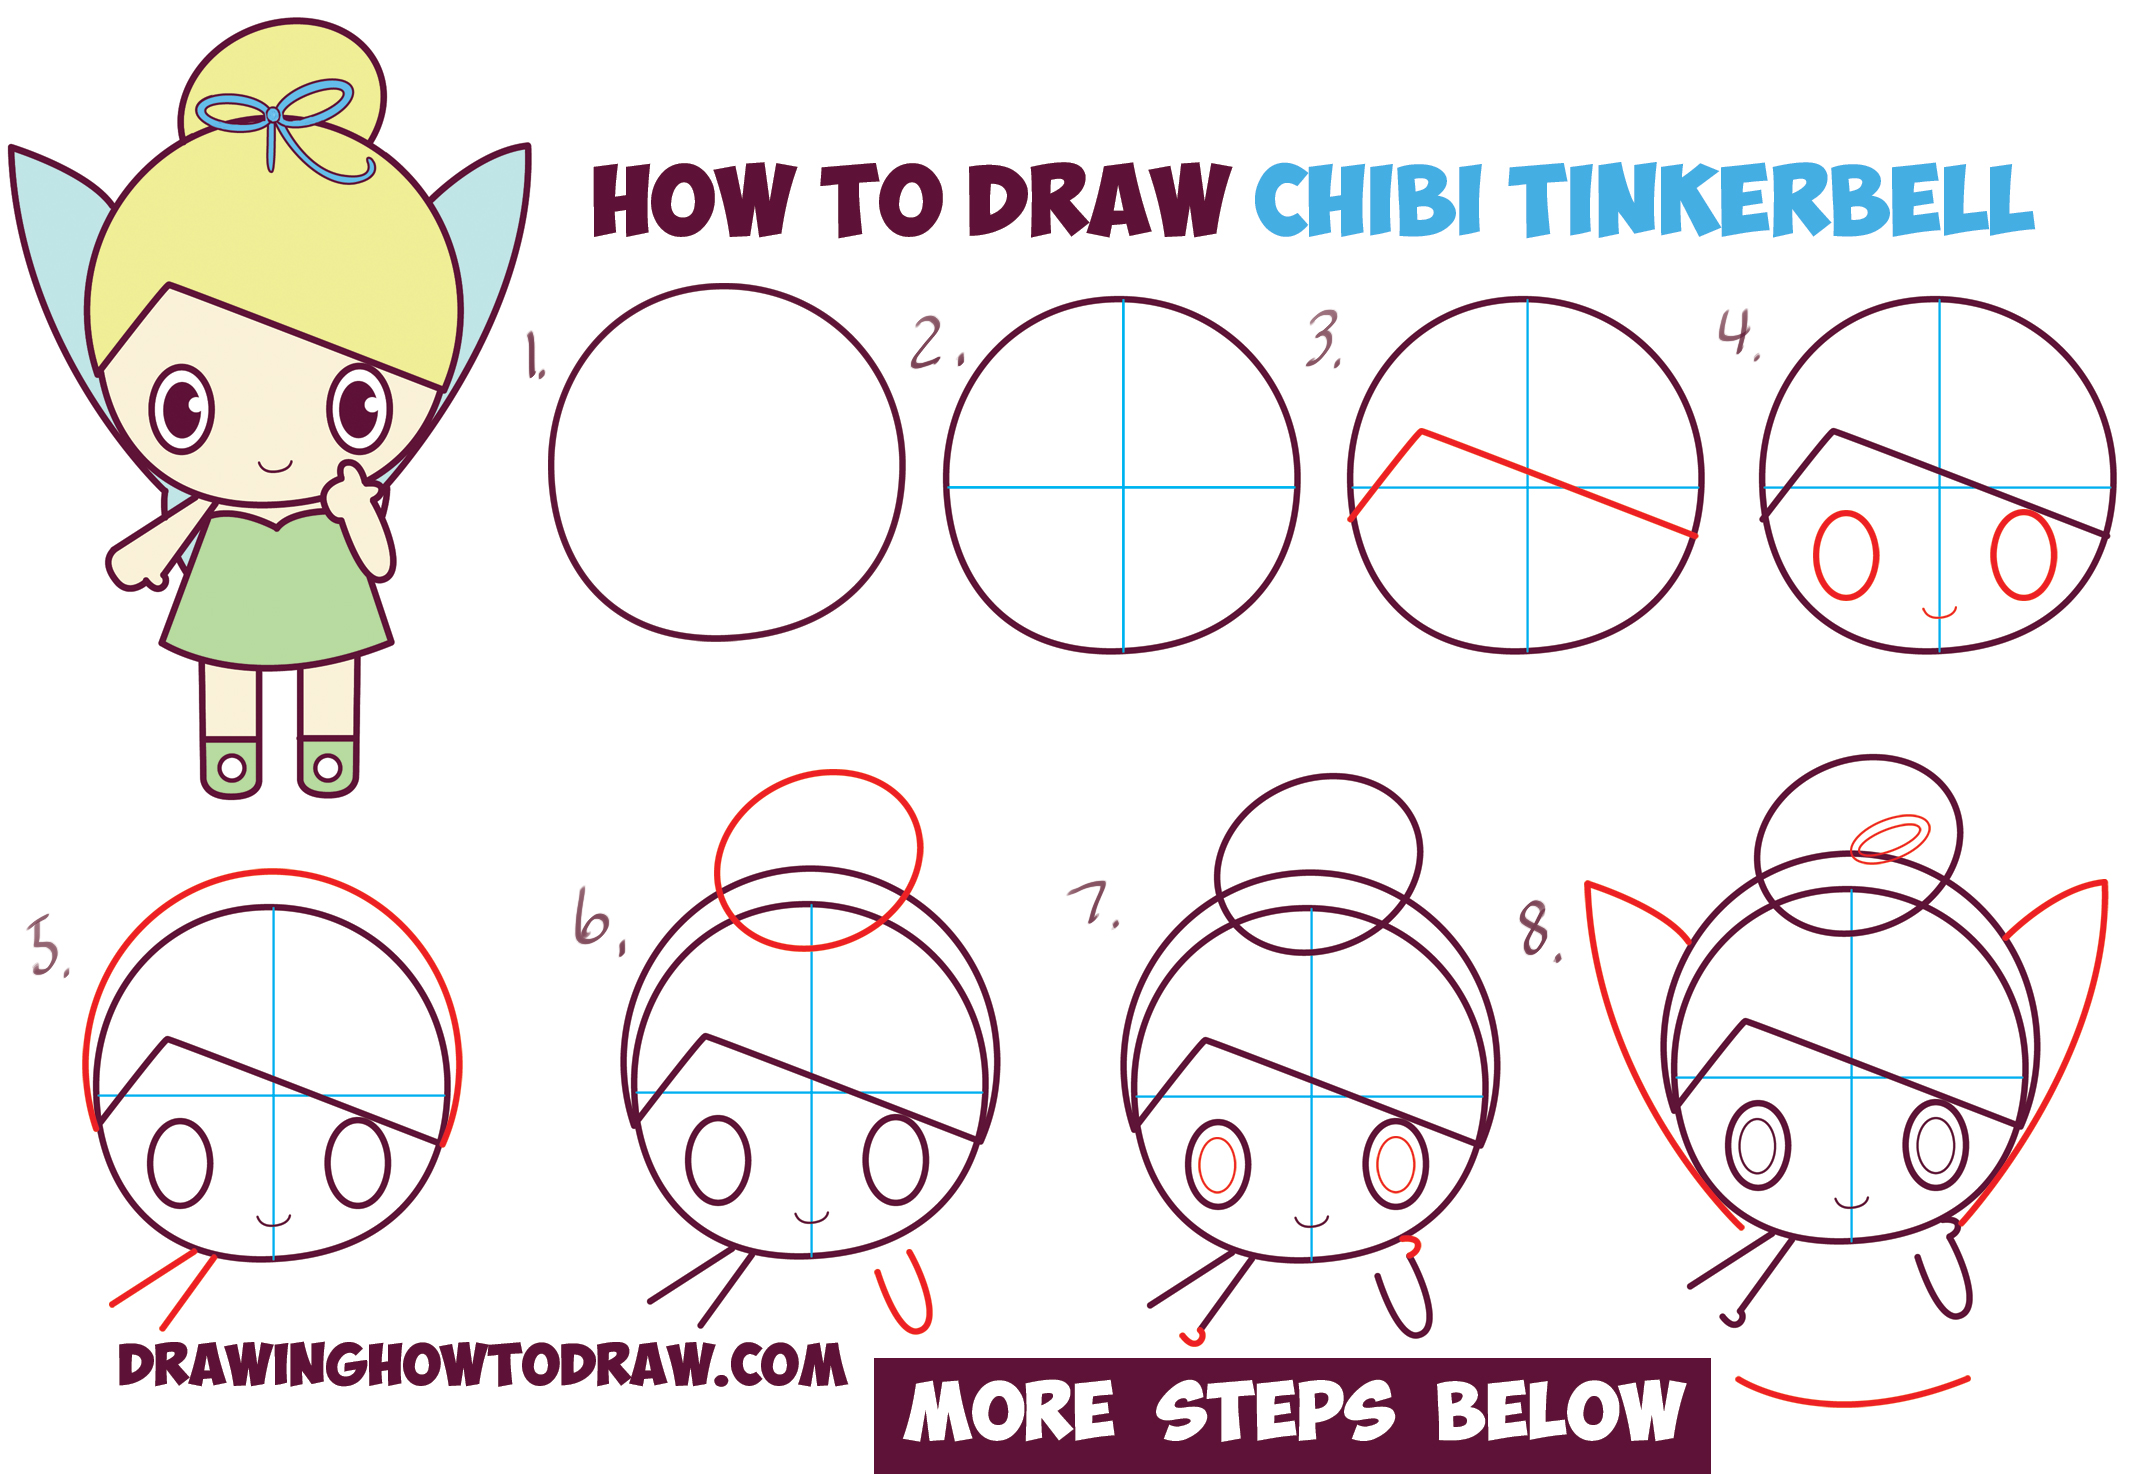 how to draw chibi tinkerbell the disney fairy in easy